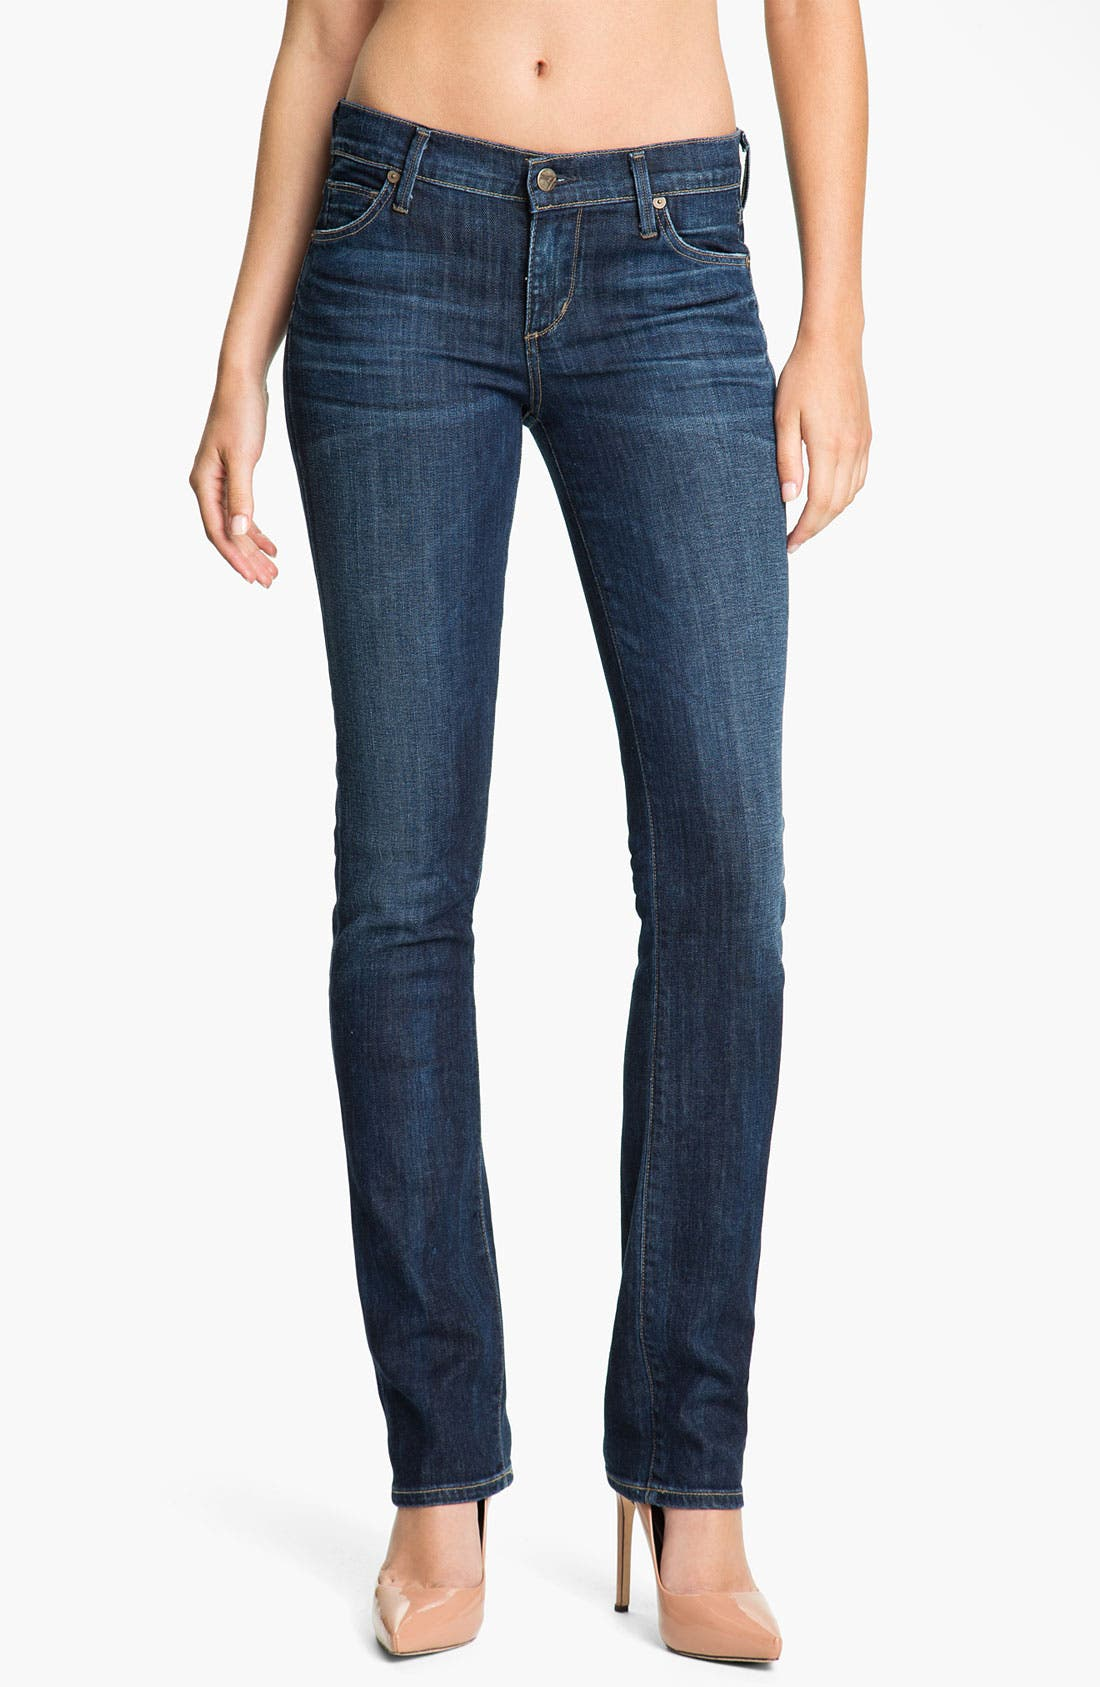 Main Image - Citizens of Humanity 'Ava' Straight Leg Stretch Denim Jeans (New Spectrum)